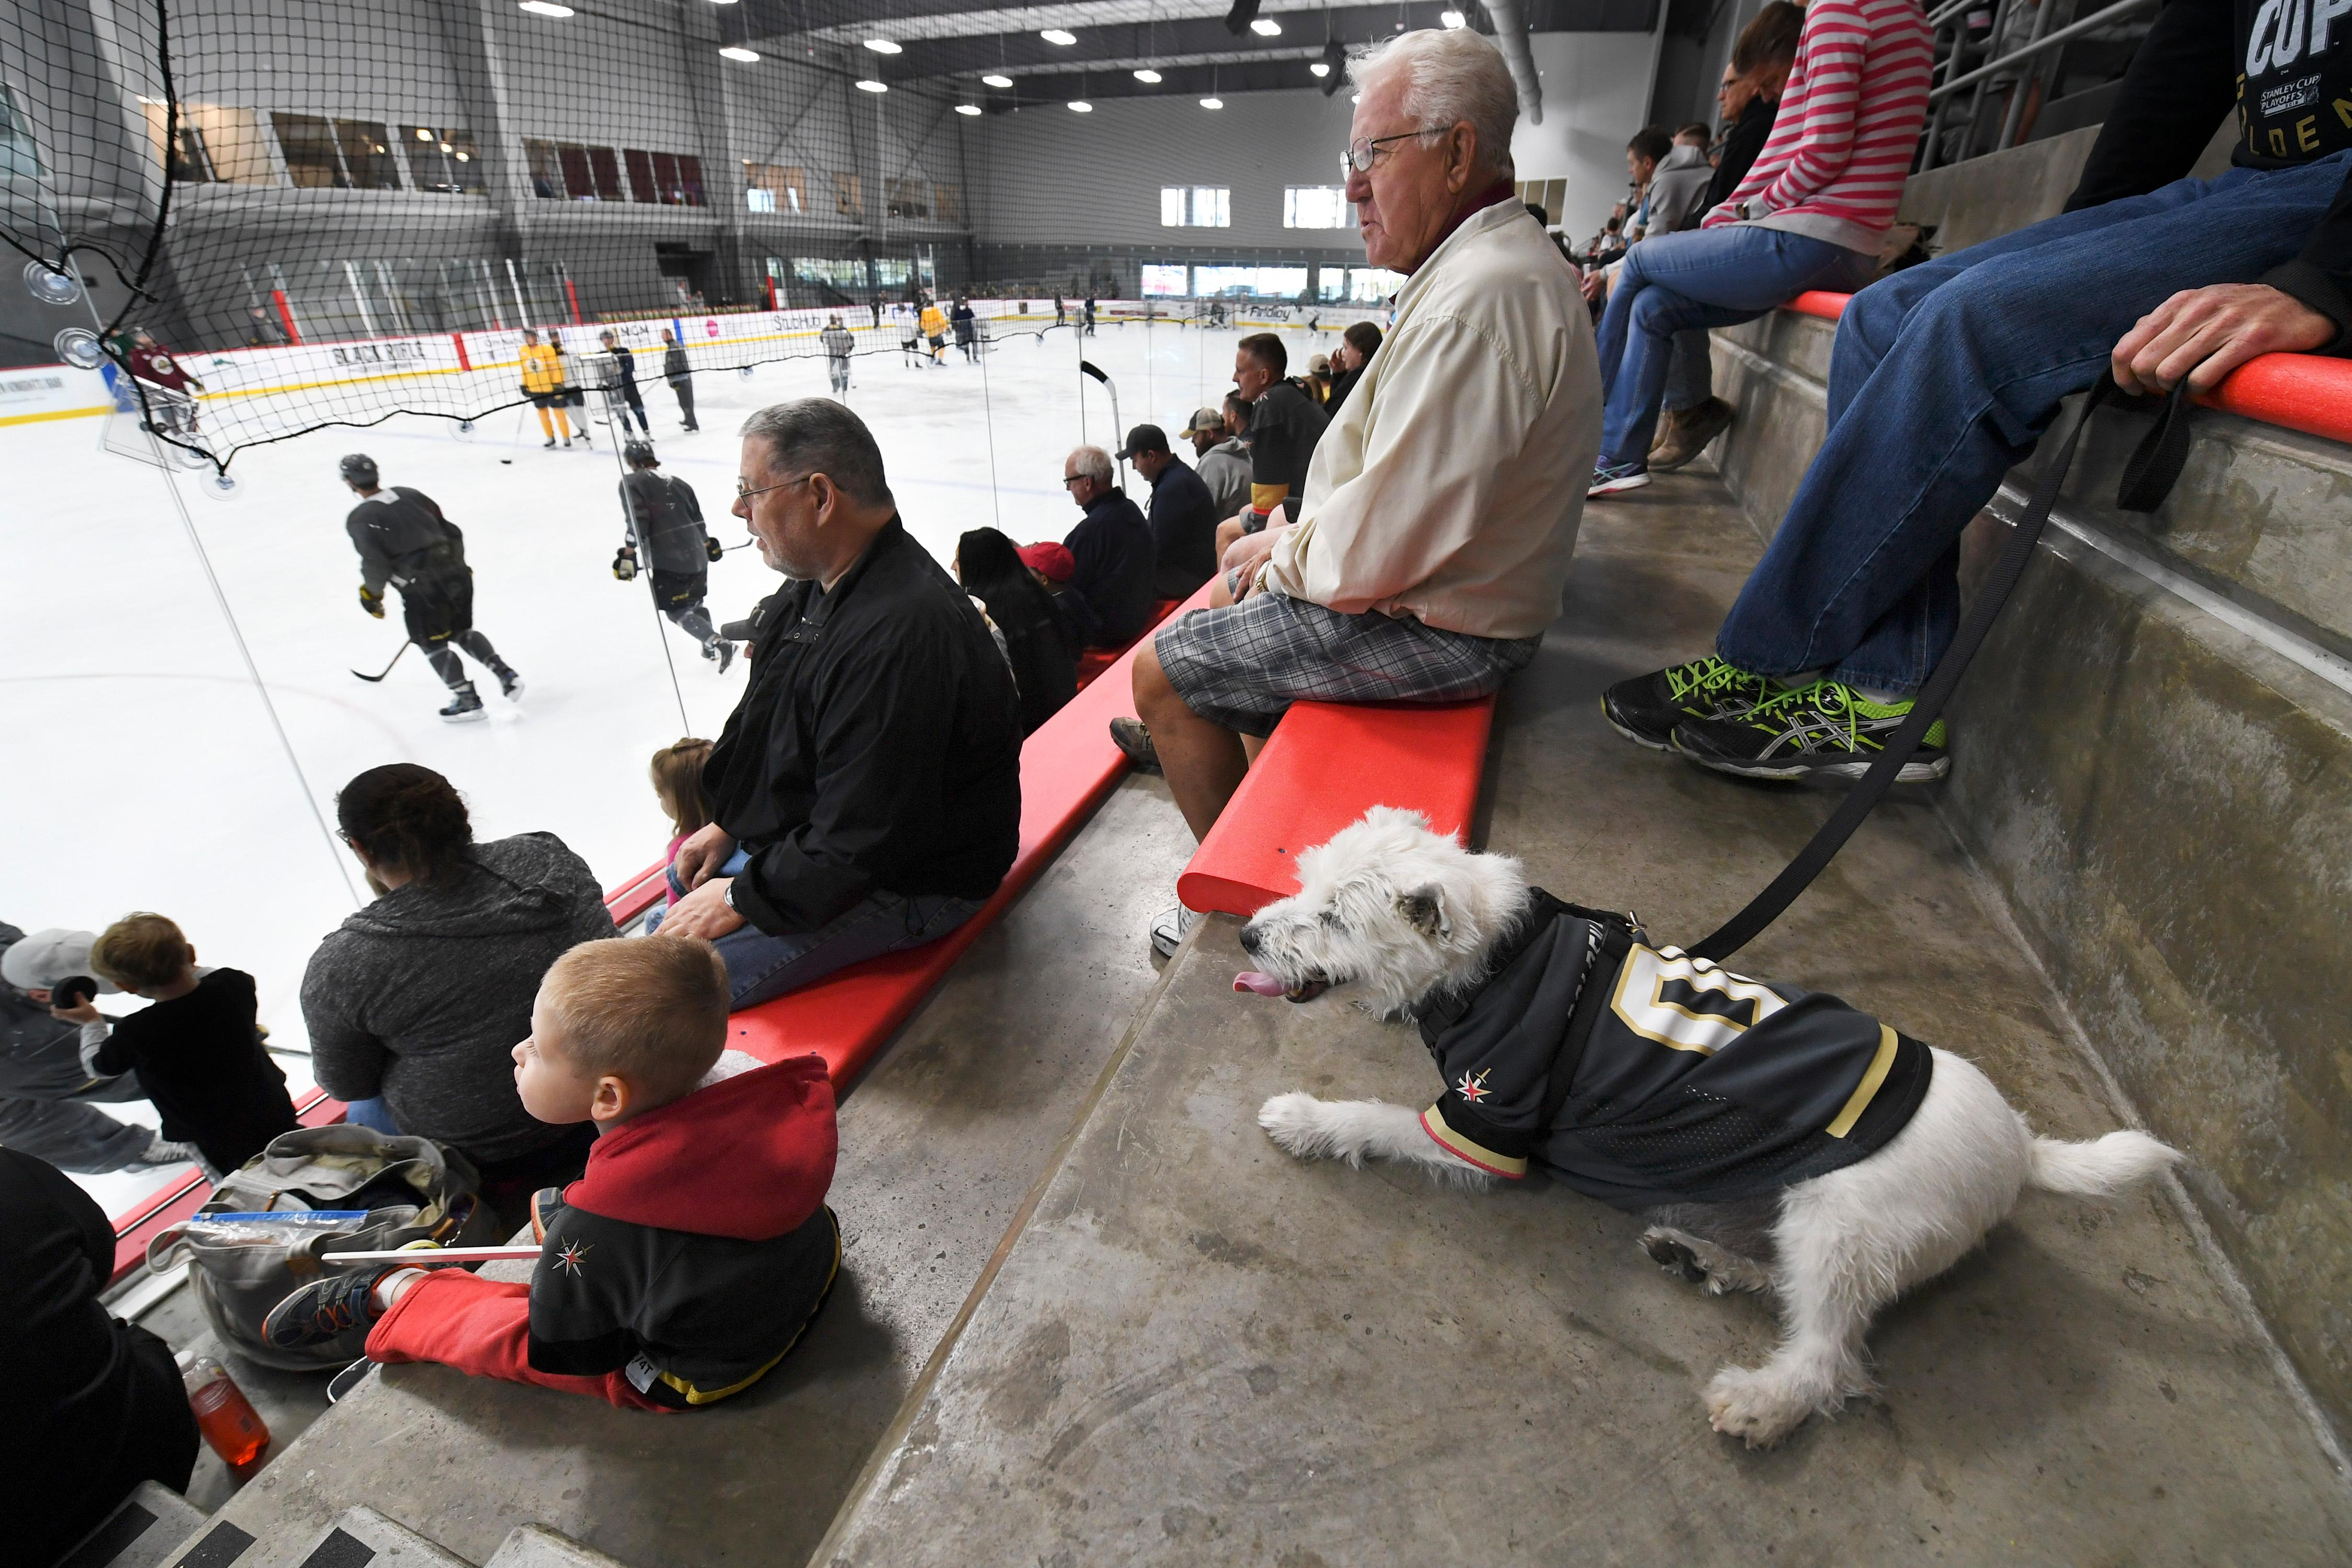 Rick Williams' dog Bark-Andre Furry, named in homage to Vegas Golden Knight goalkeeper Marc-Andre Fleury, watches during the Vegas Golden Knights practice Friday, April 20, 2018, at City National Arena in Las Vegas. CREDIT: Sam Morris/Las Vegas News Bureau